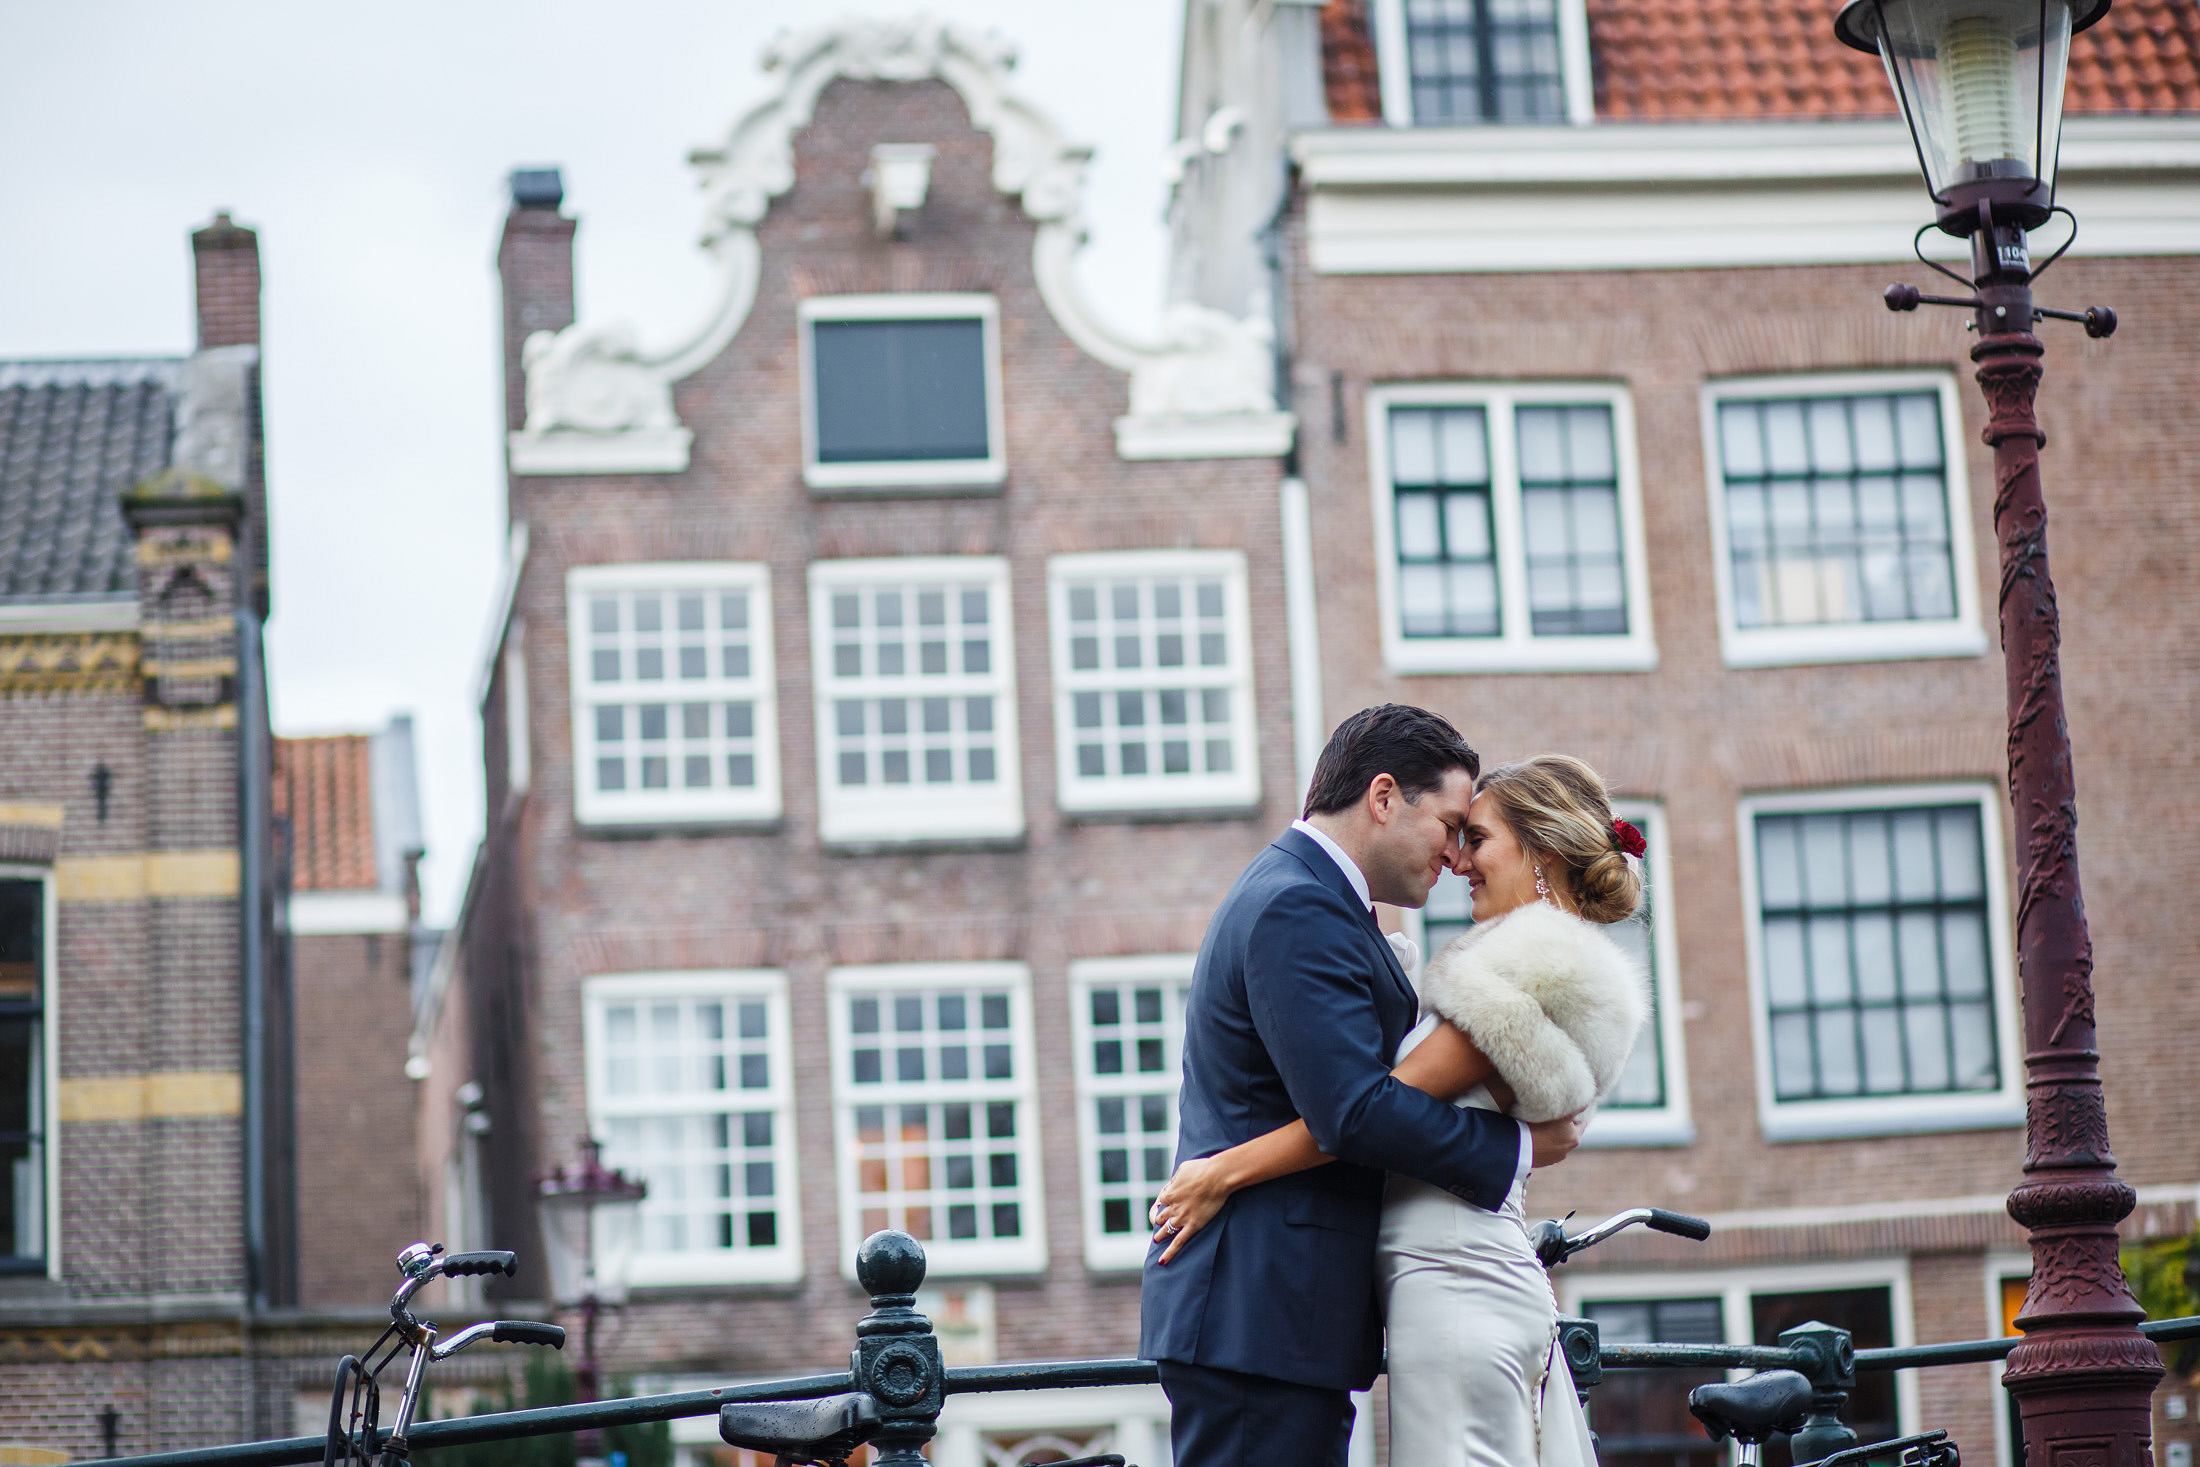 27-photoshoot-wedding-amsterdam